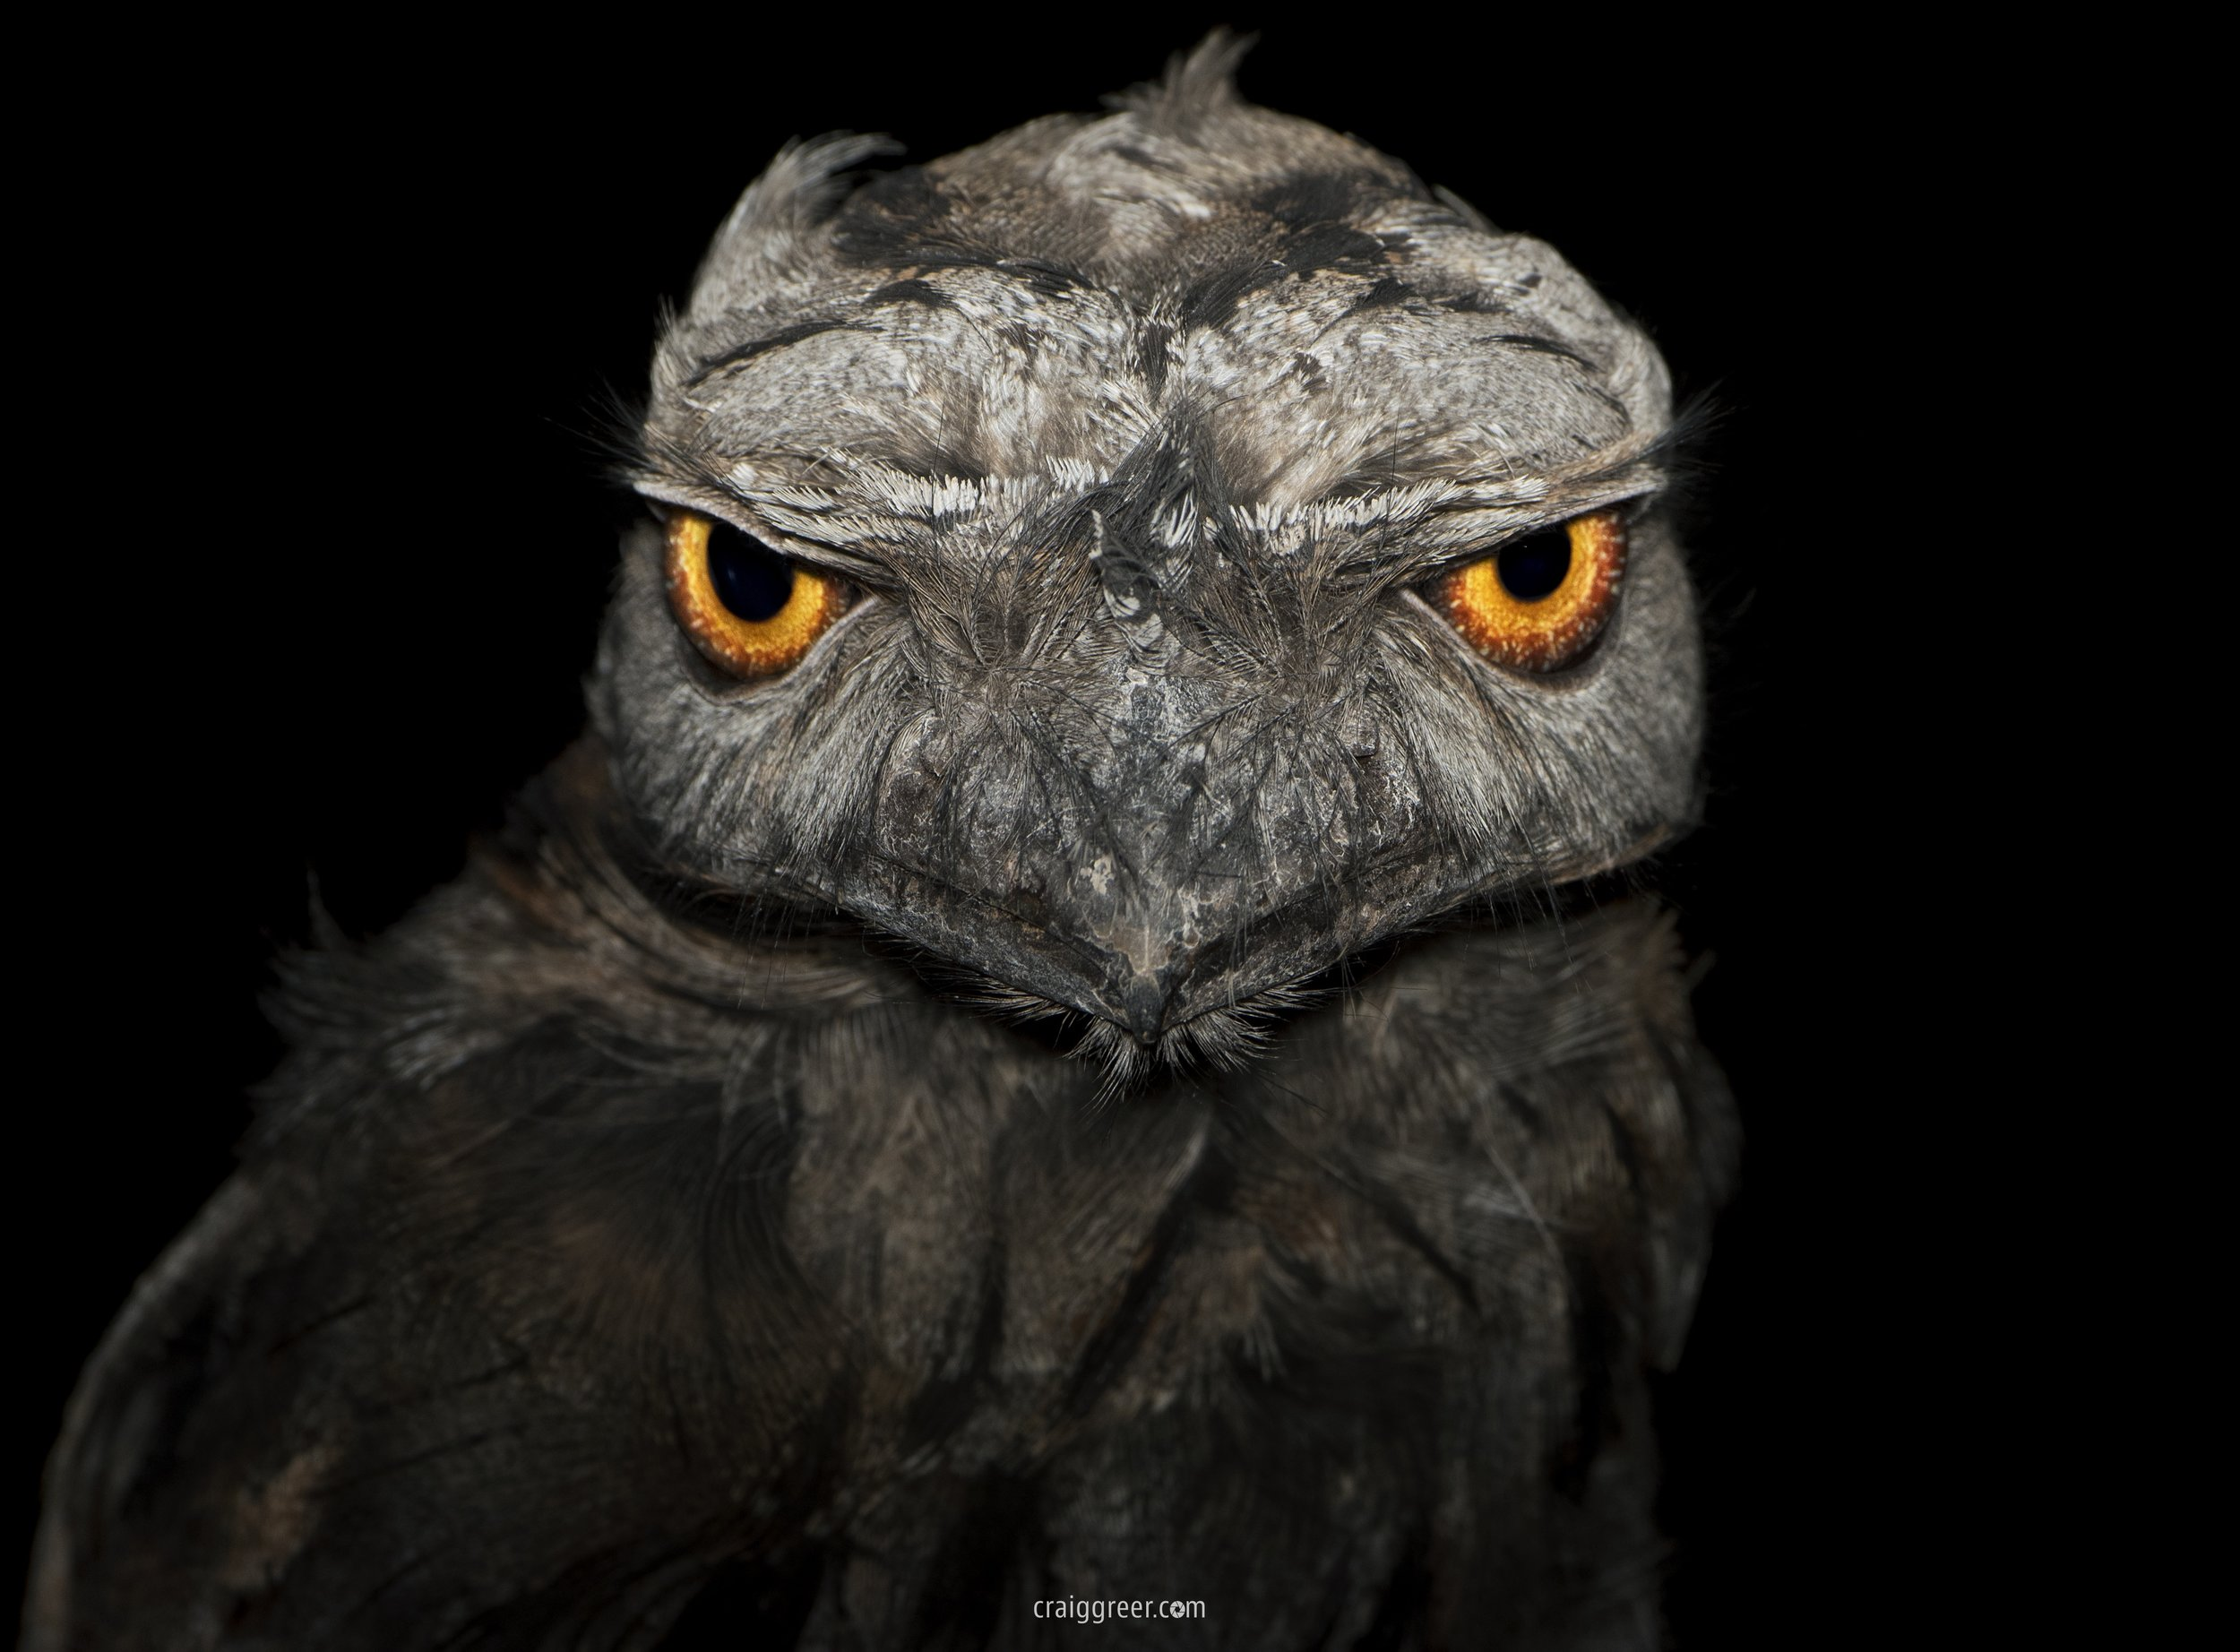 Tawny Frogmouth | Freeeling